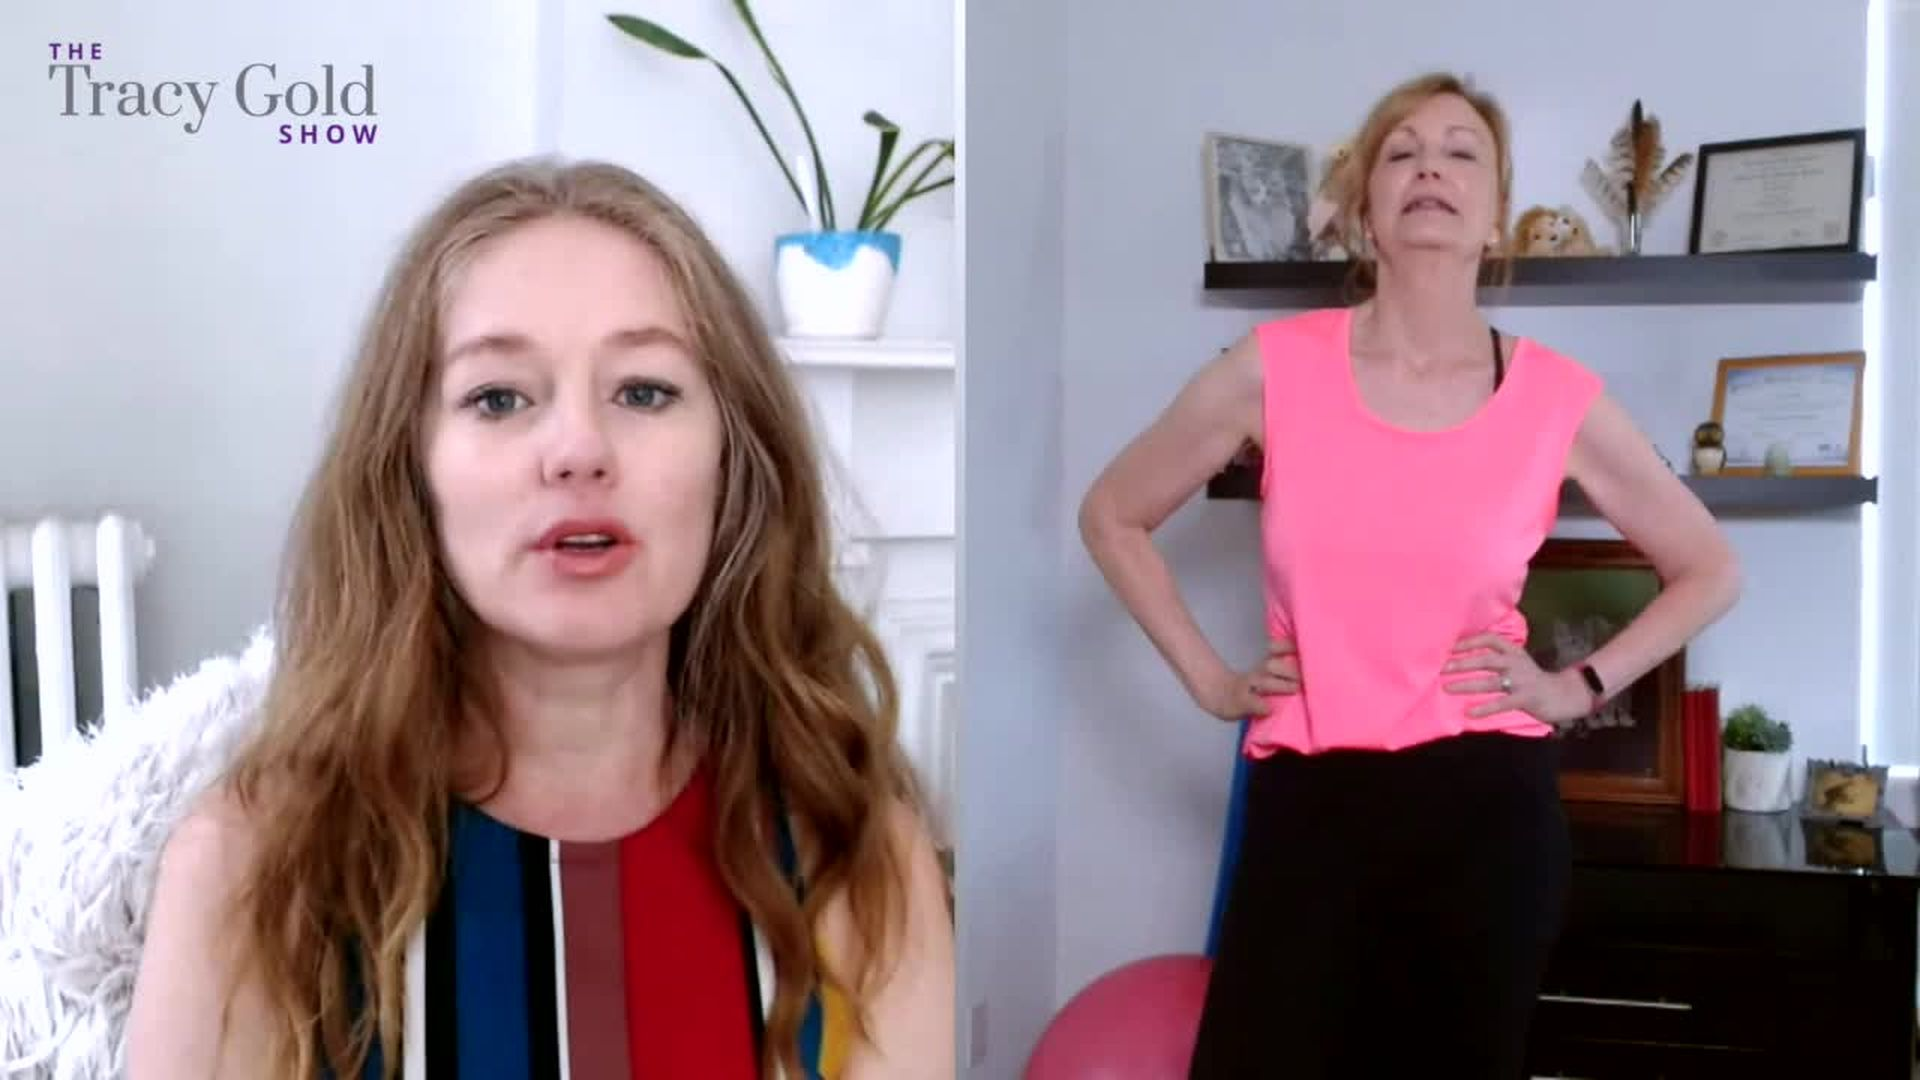 How to Get Fit Over 50 With Amy Van Liew Part 3 - Tracy Gold Show